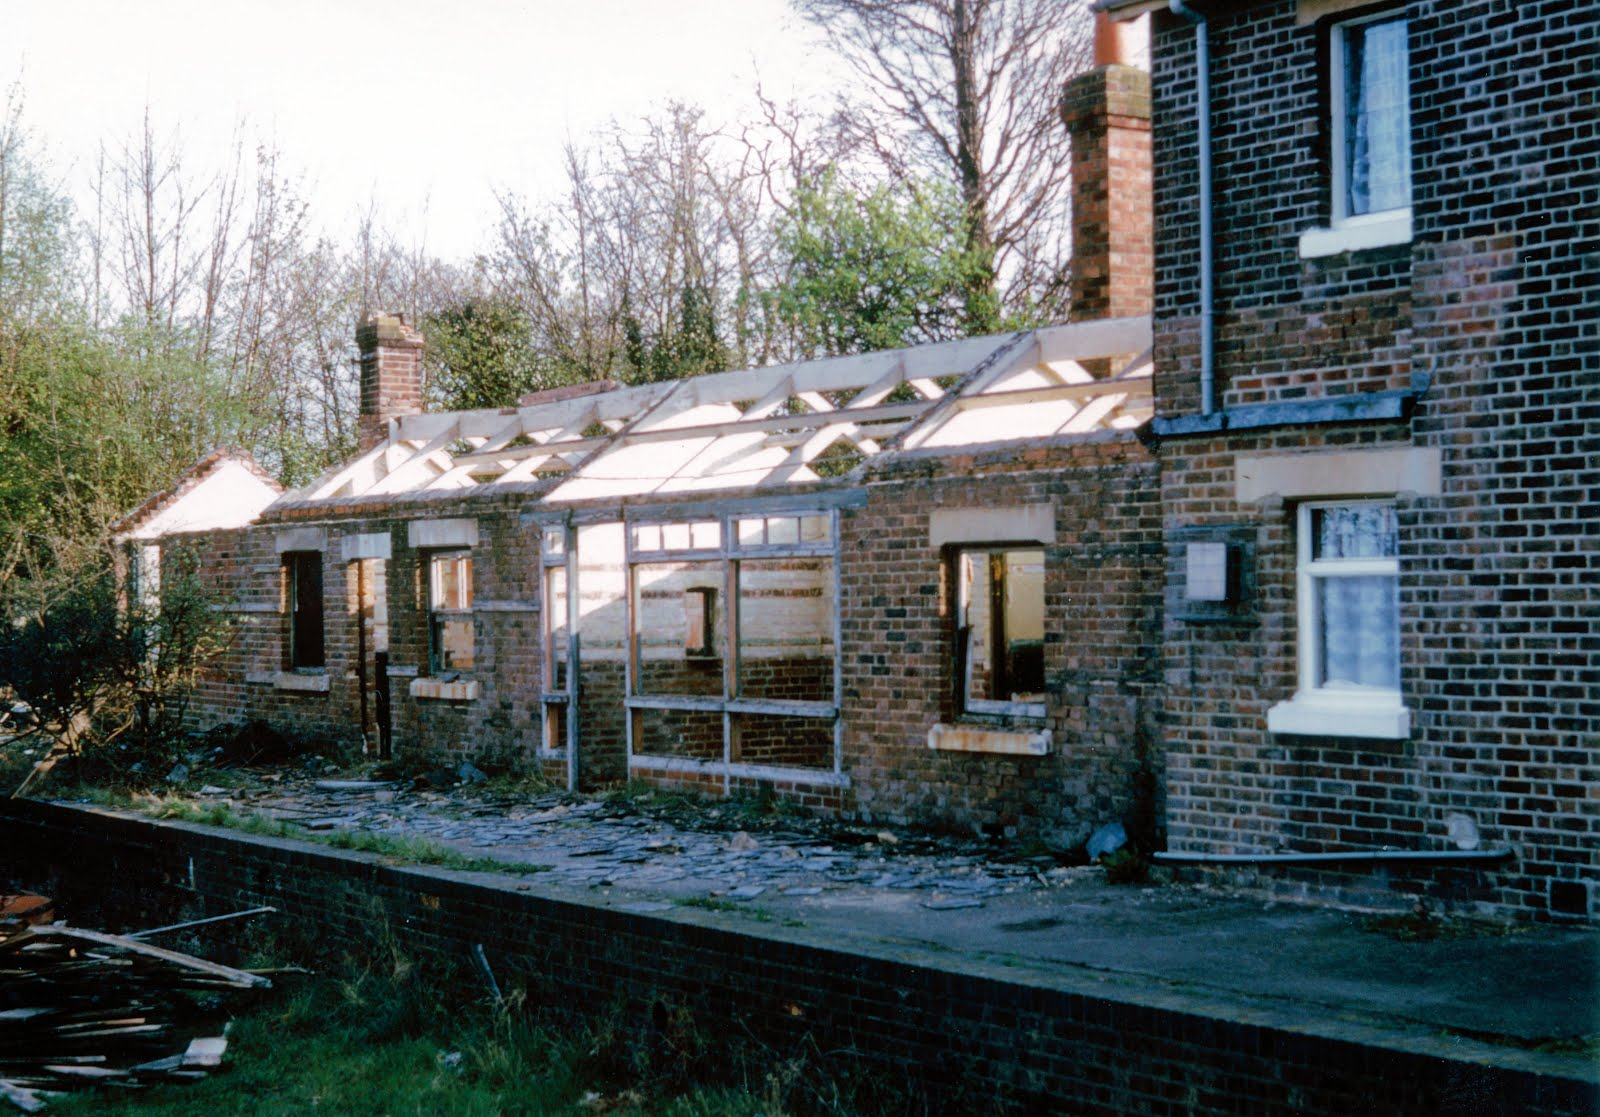 Demolishing Brockhurst booking office